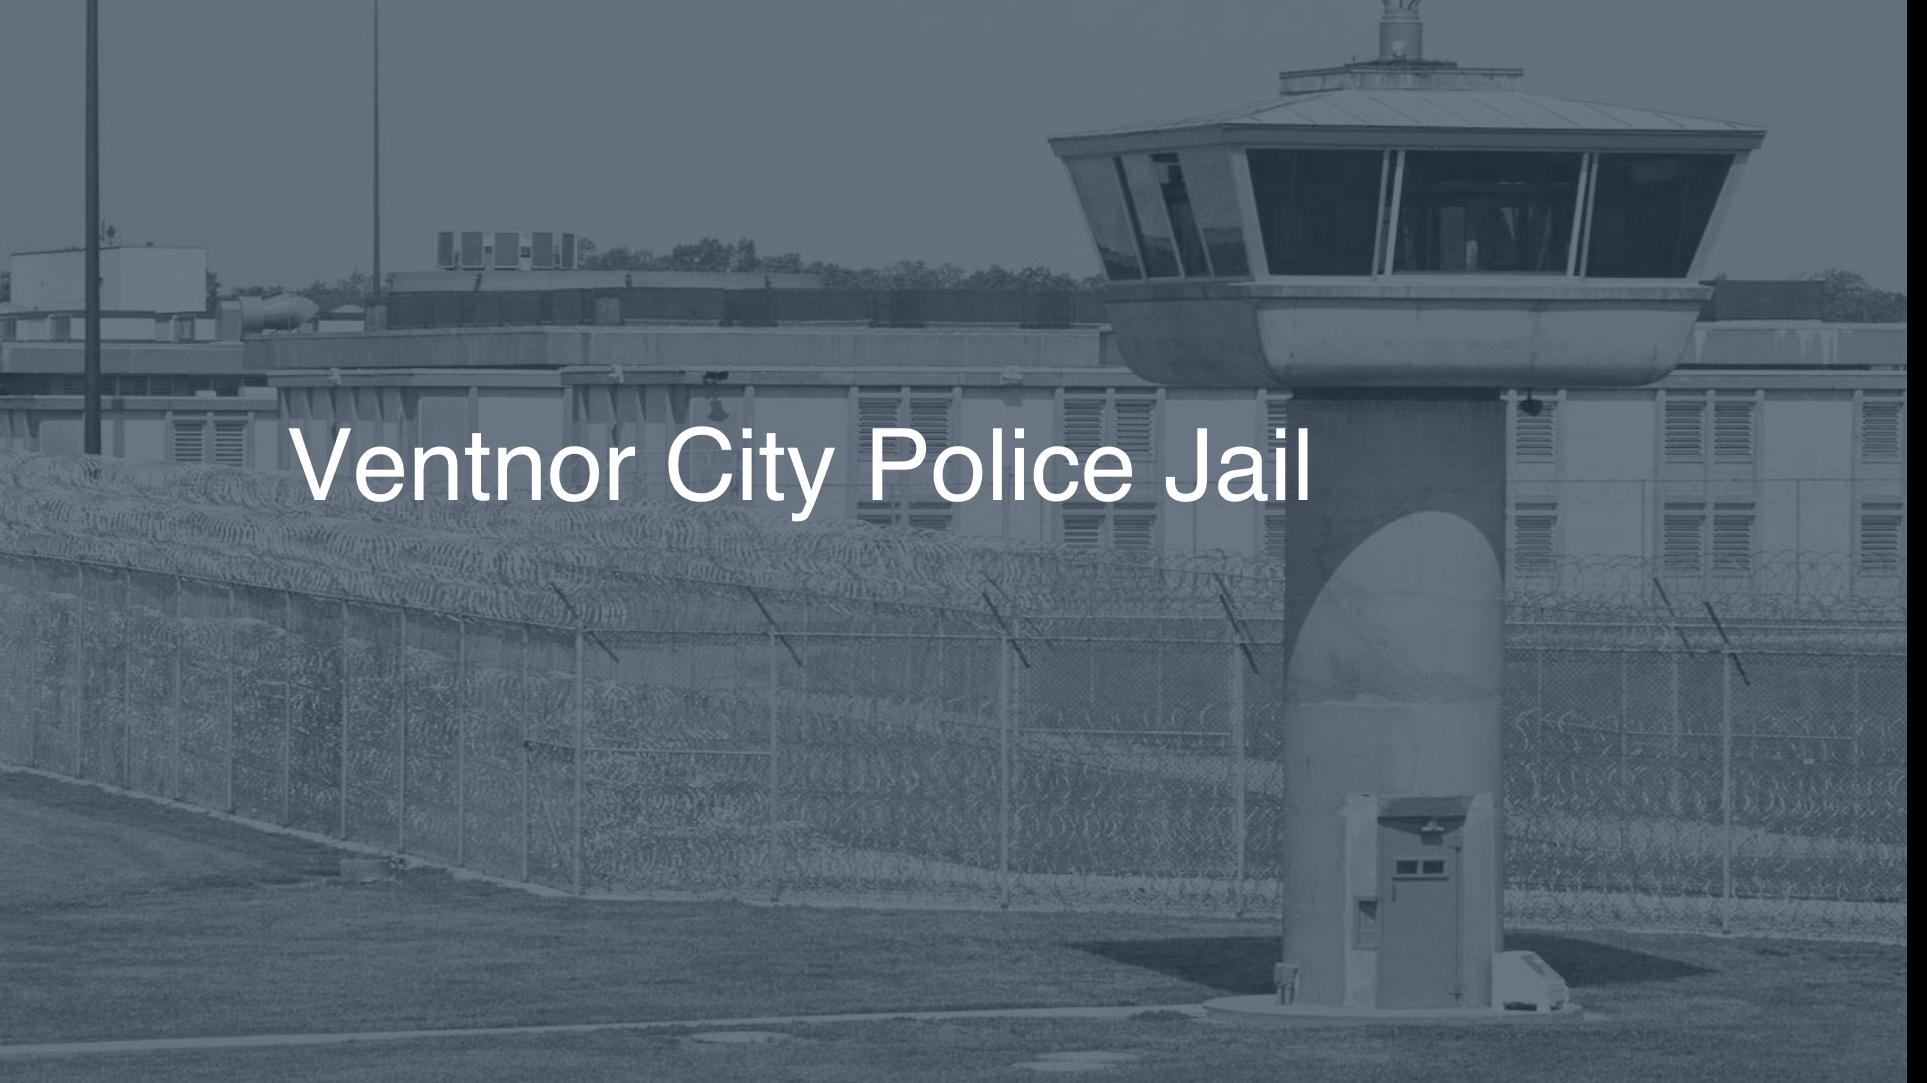 Ventnor City Police Jail correctional facility picture